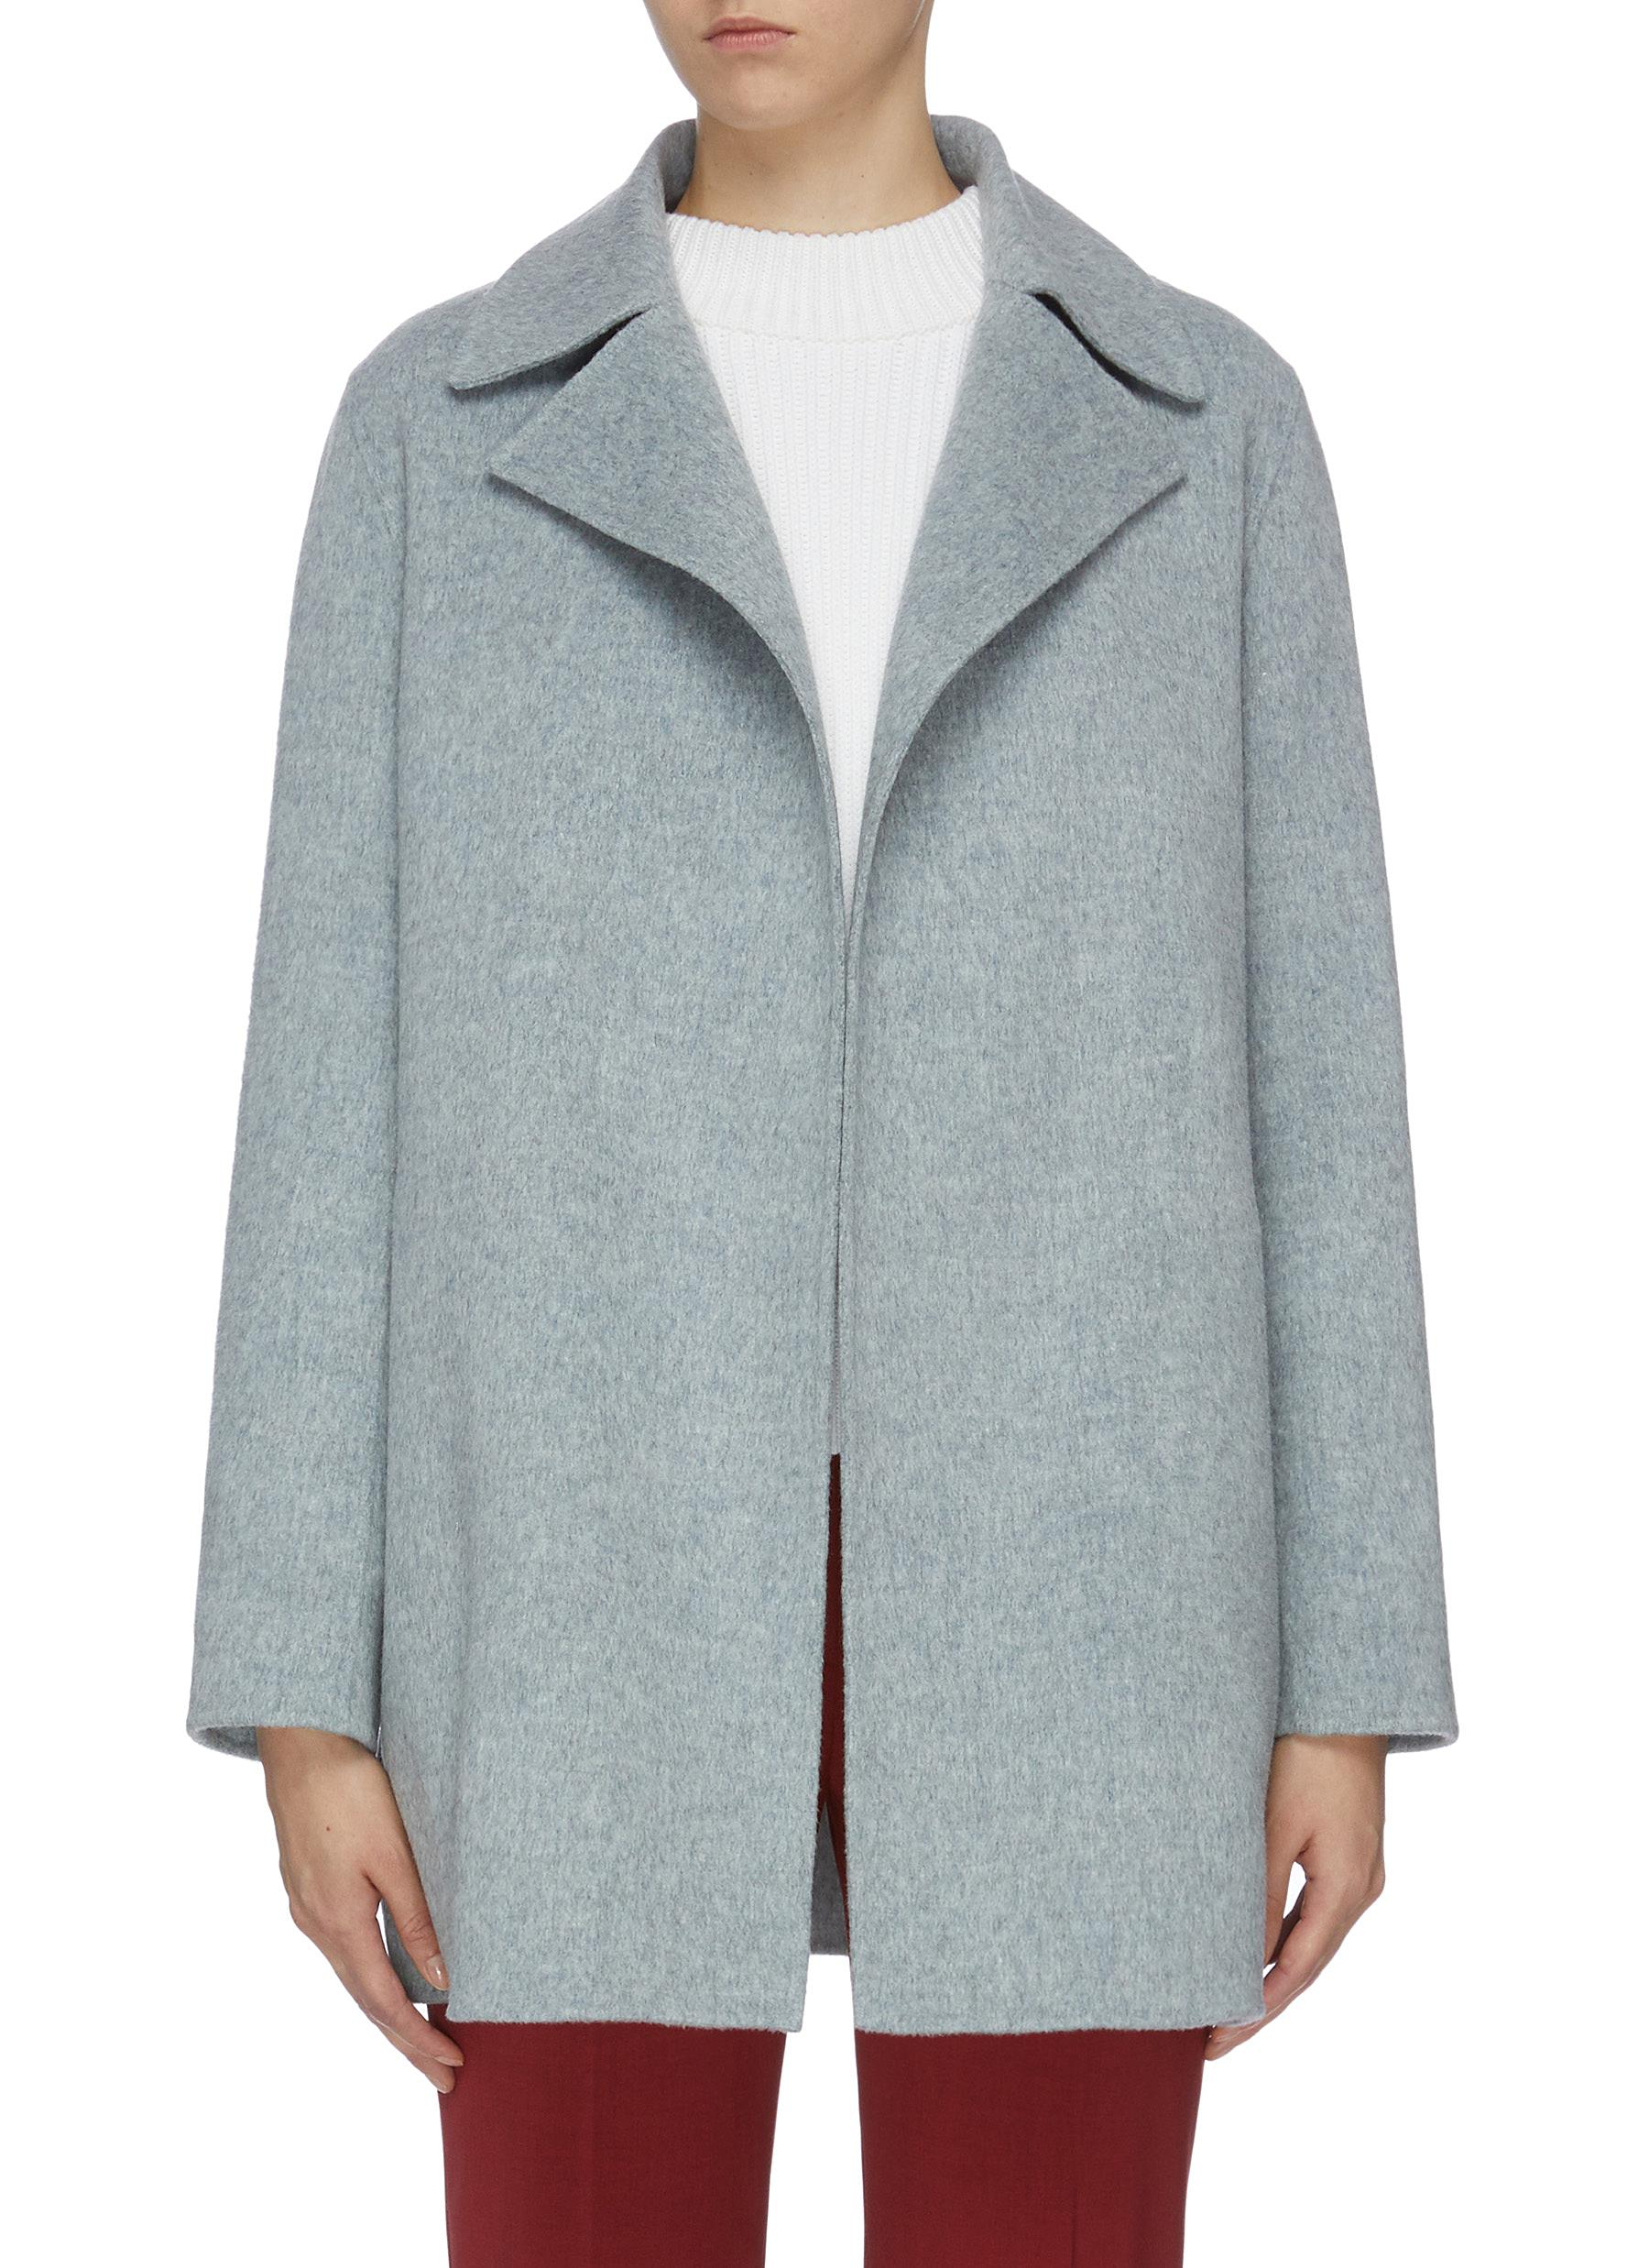 Wool-cashmere melton coat by Theory